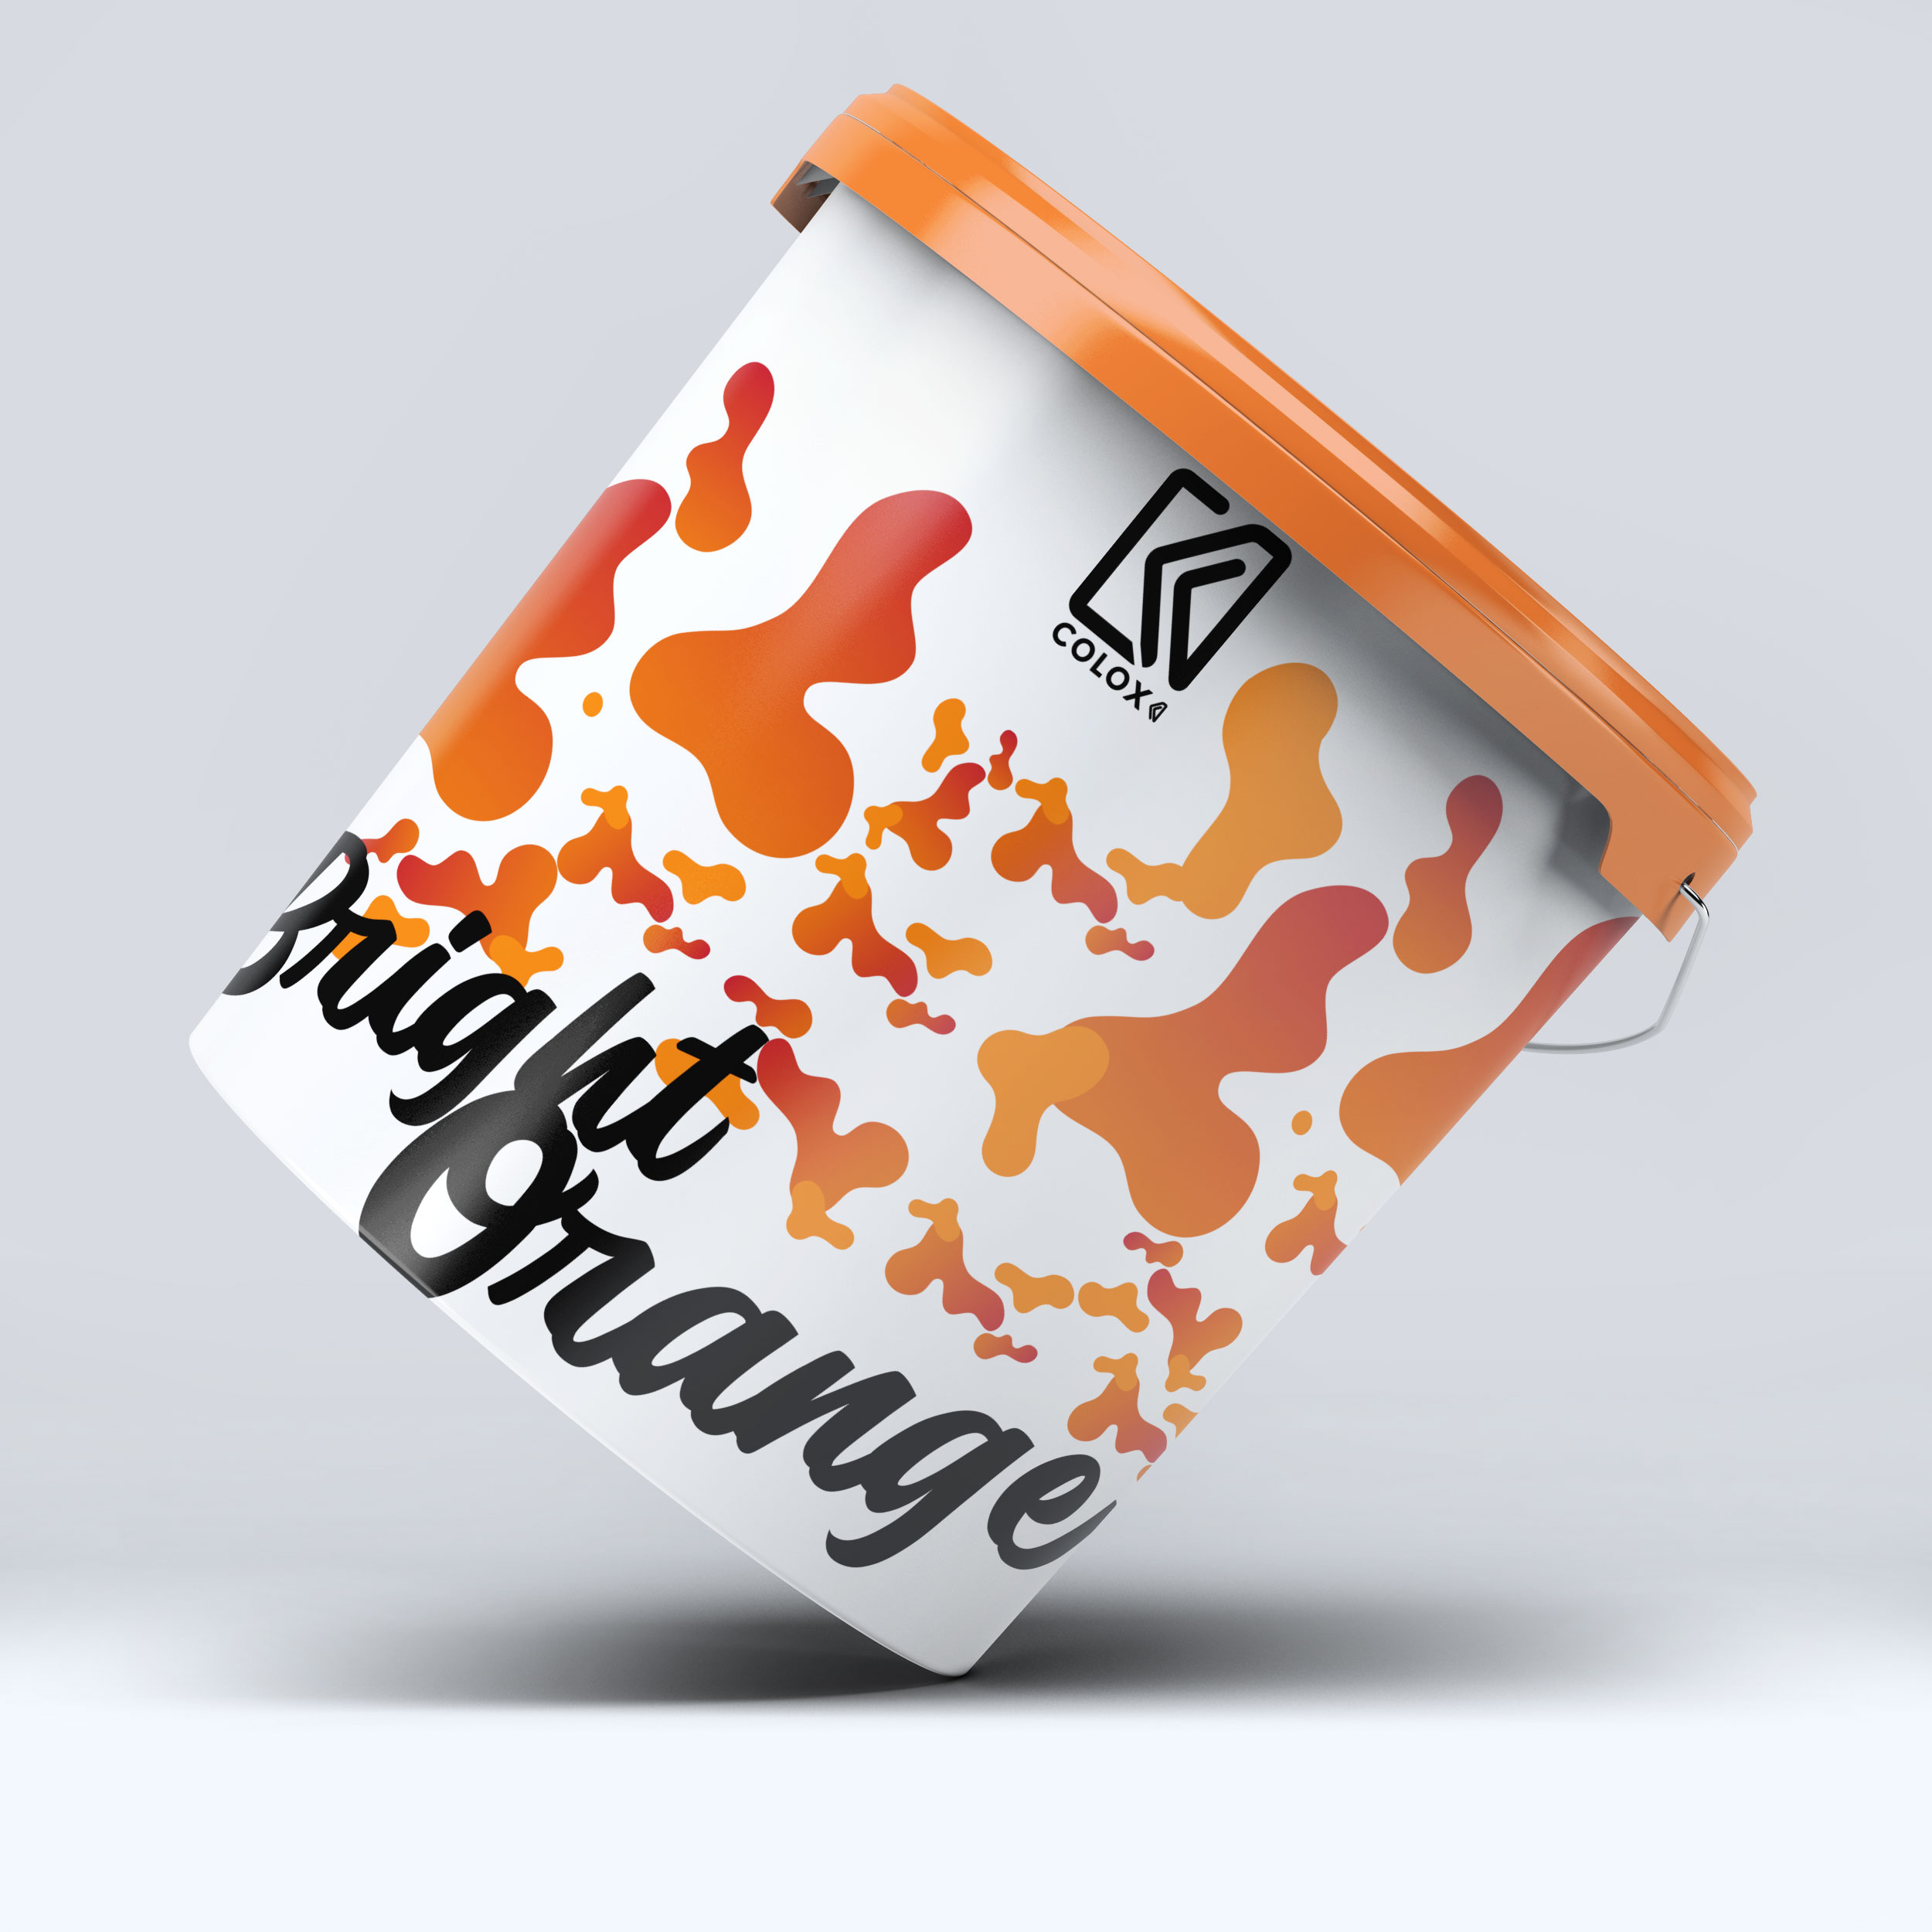 07-Plastic-Paint-Bucket-Mock-Up.jpg